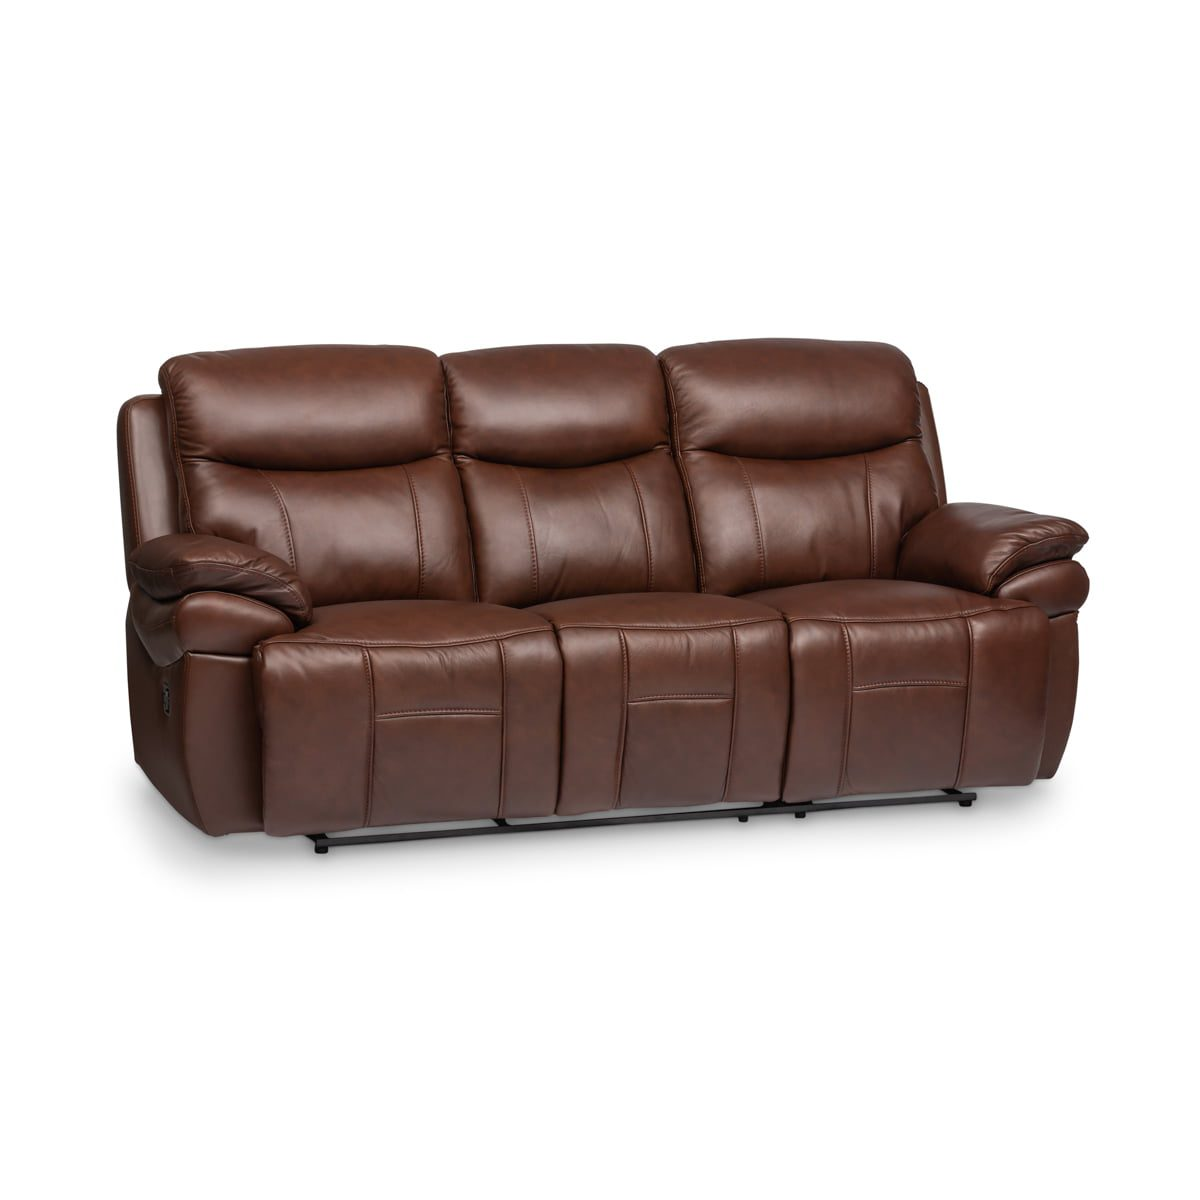 Chicago Coco 3 Seater Recliner Sofa